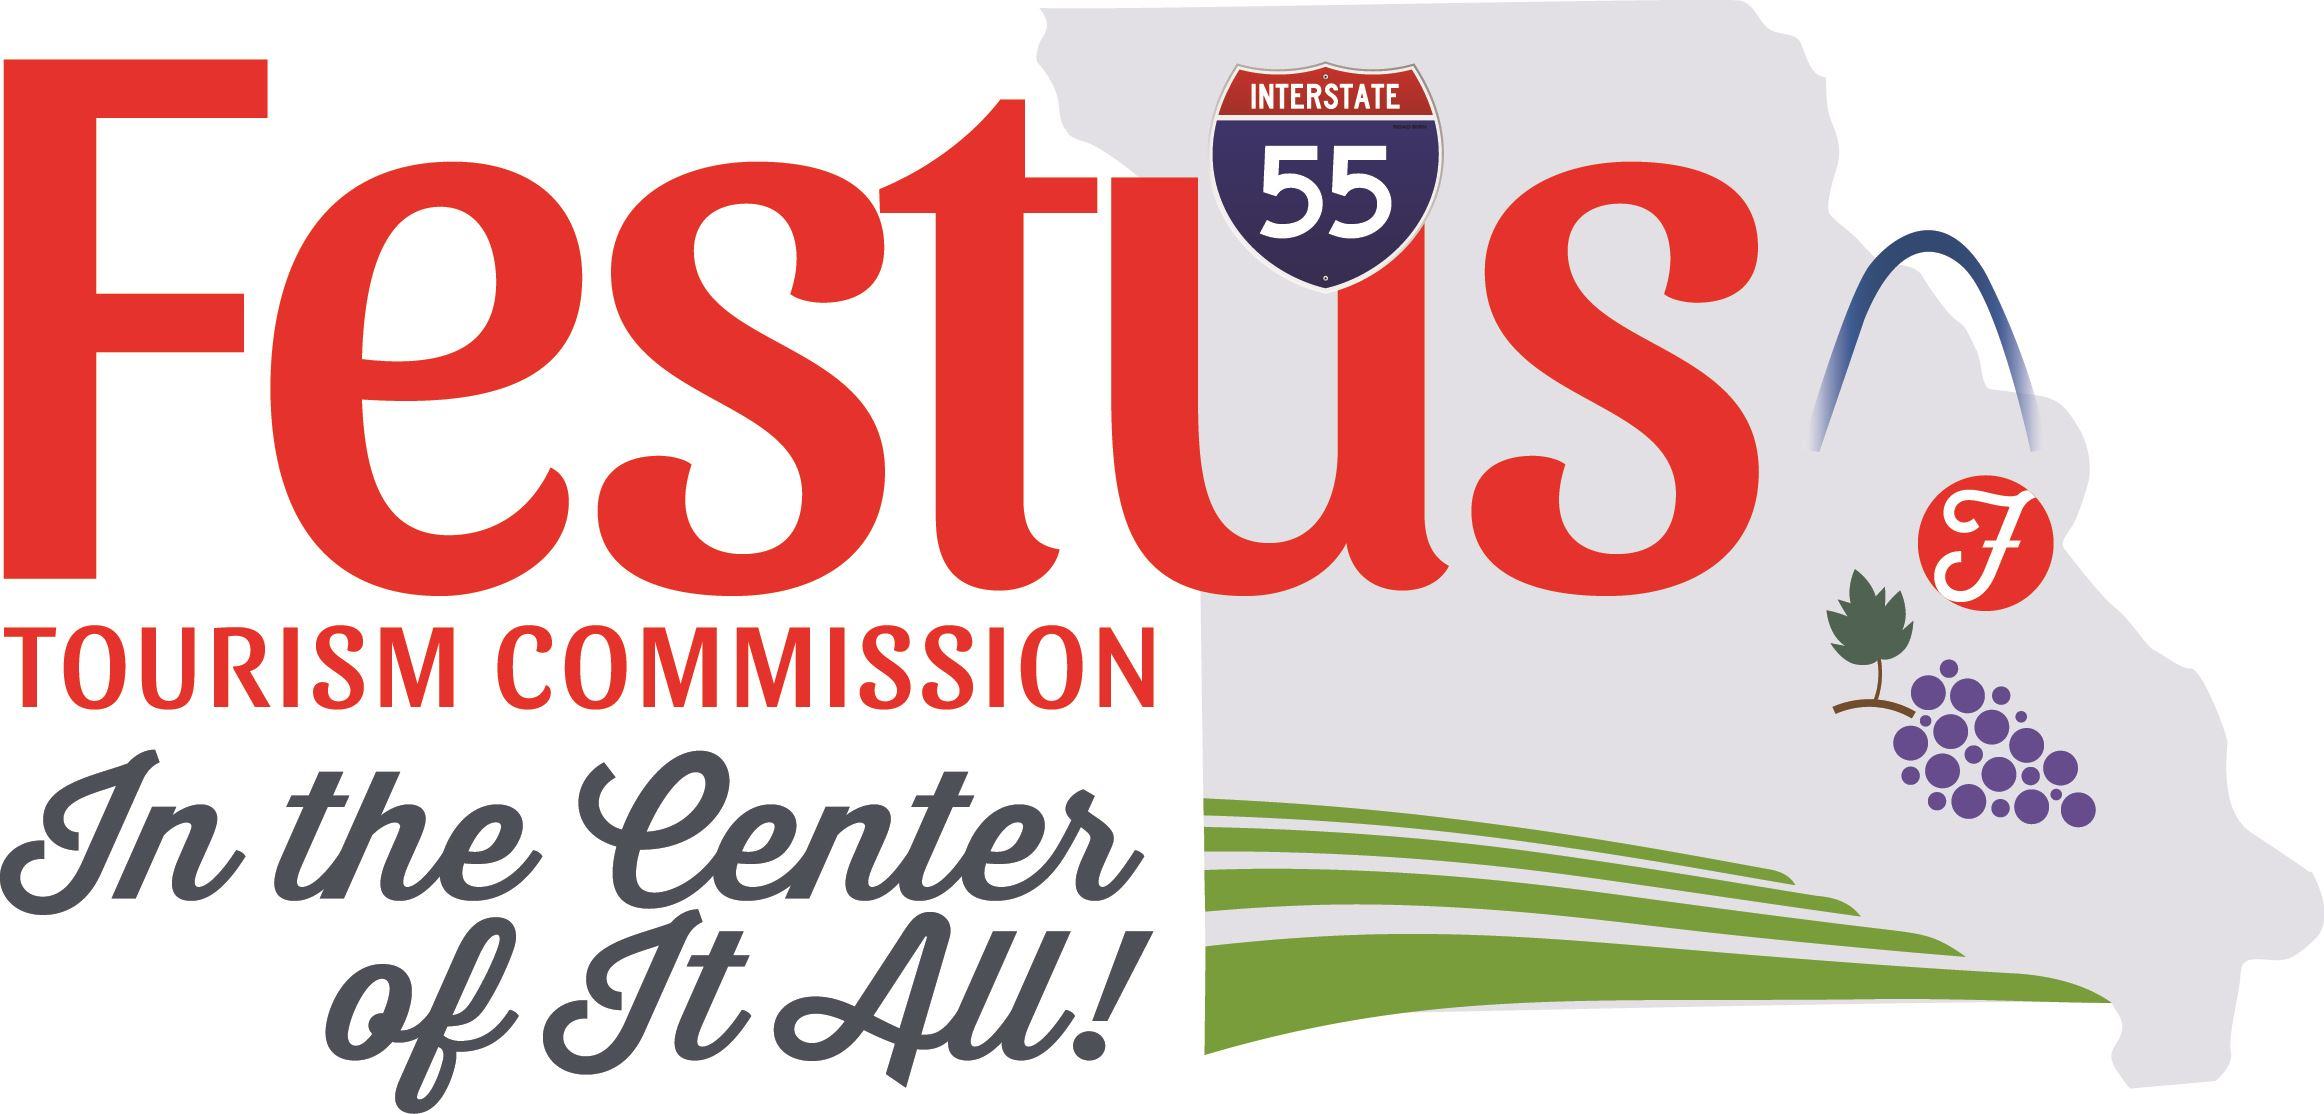 Festus Tourism Commission Logo